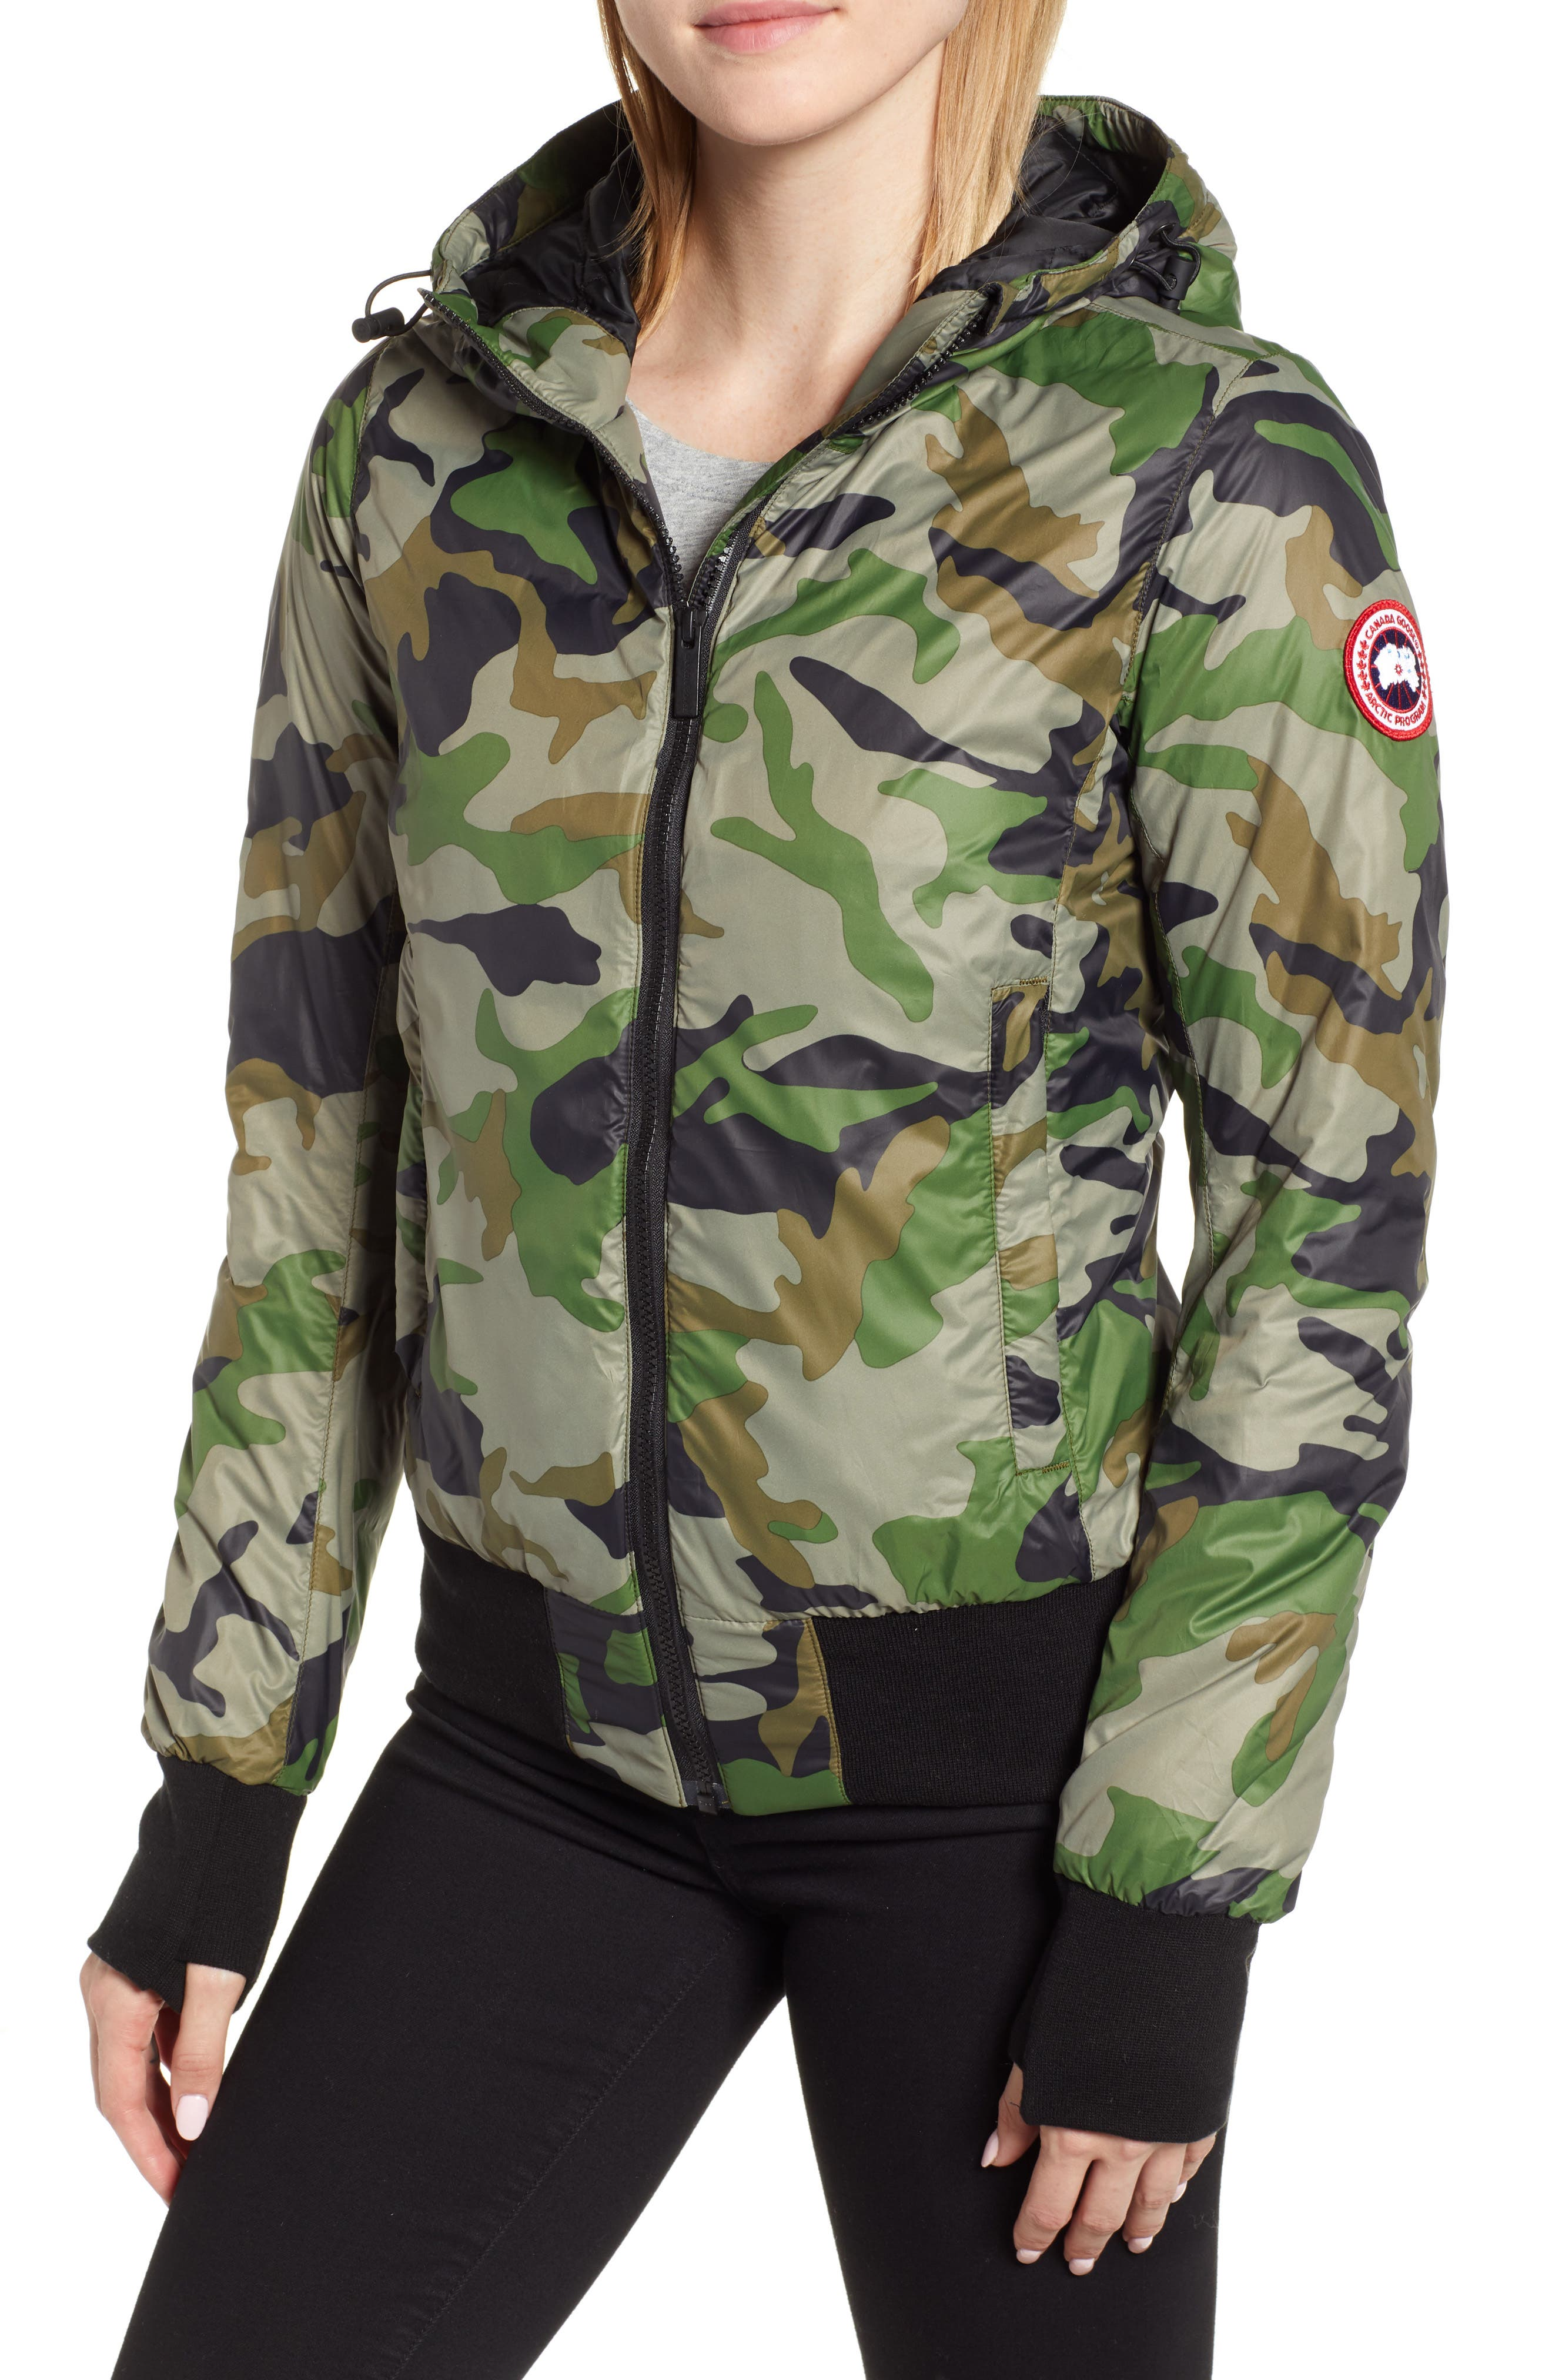 Canada Goose Dore Goose Down Hooded Jacket, (0) - Green